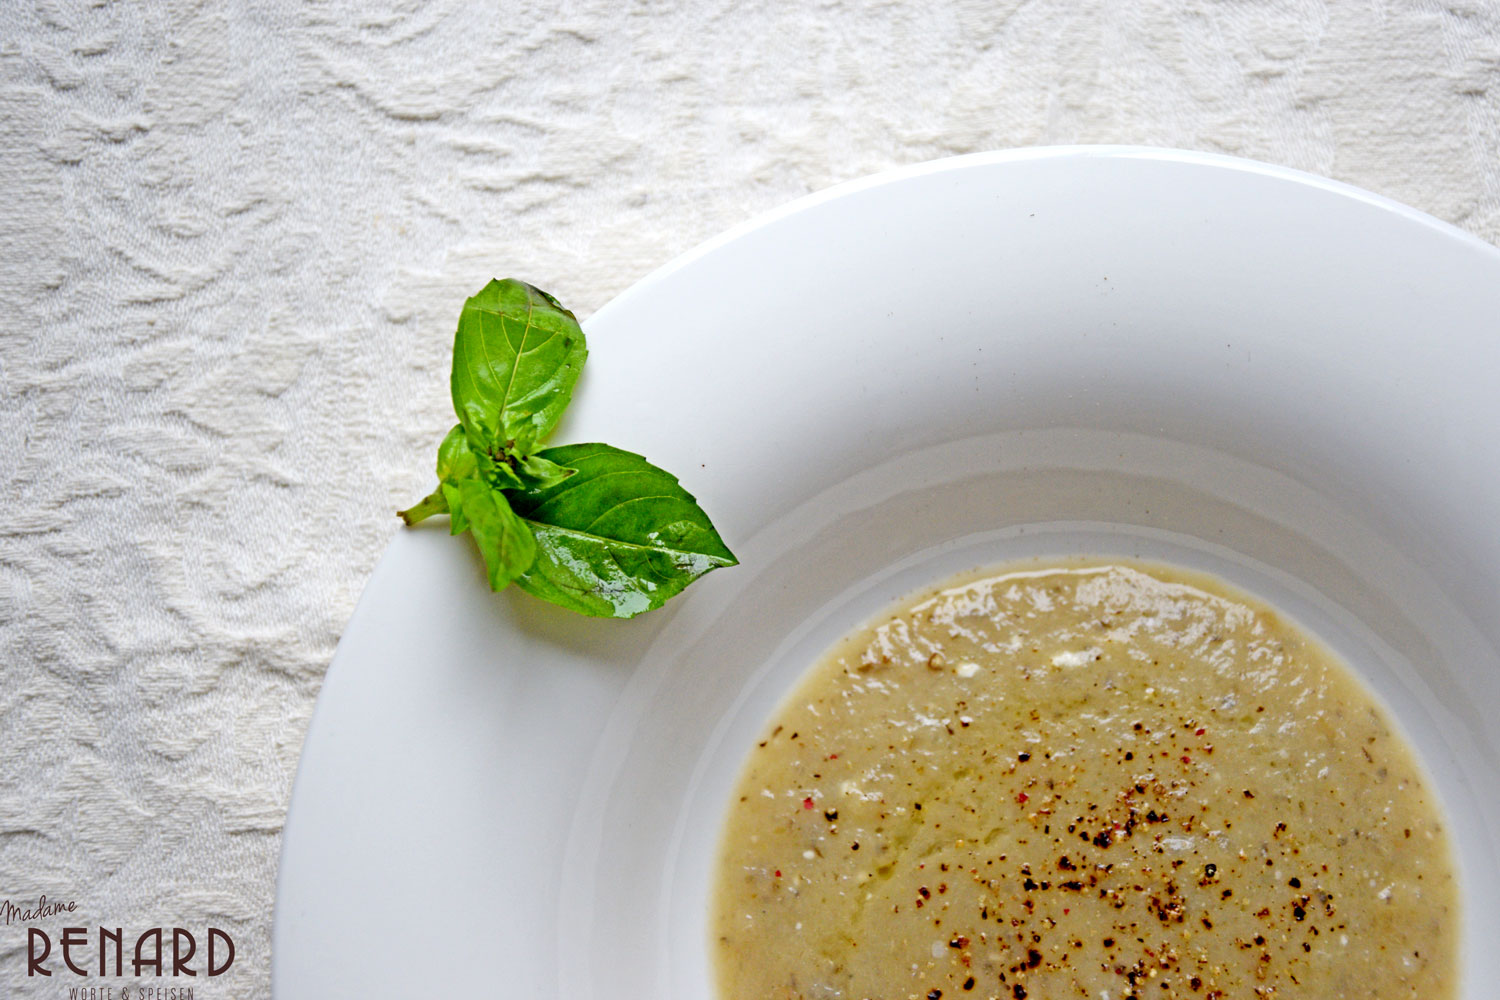 Topinambur Suppe, Foto: Madame Renard